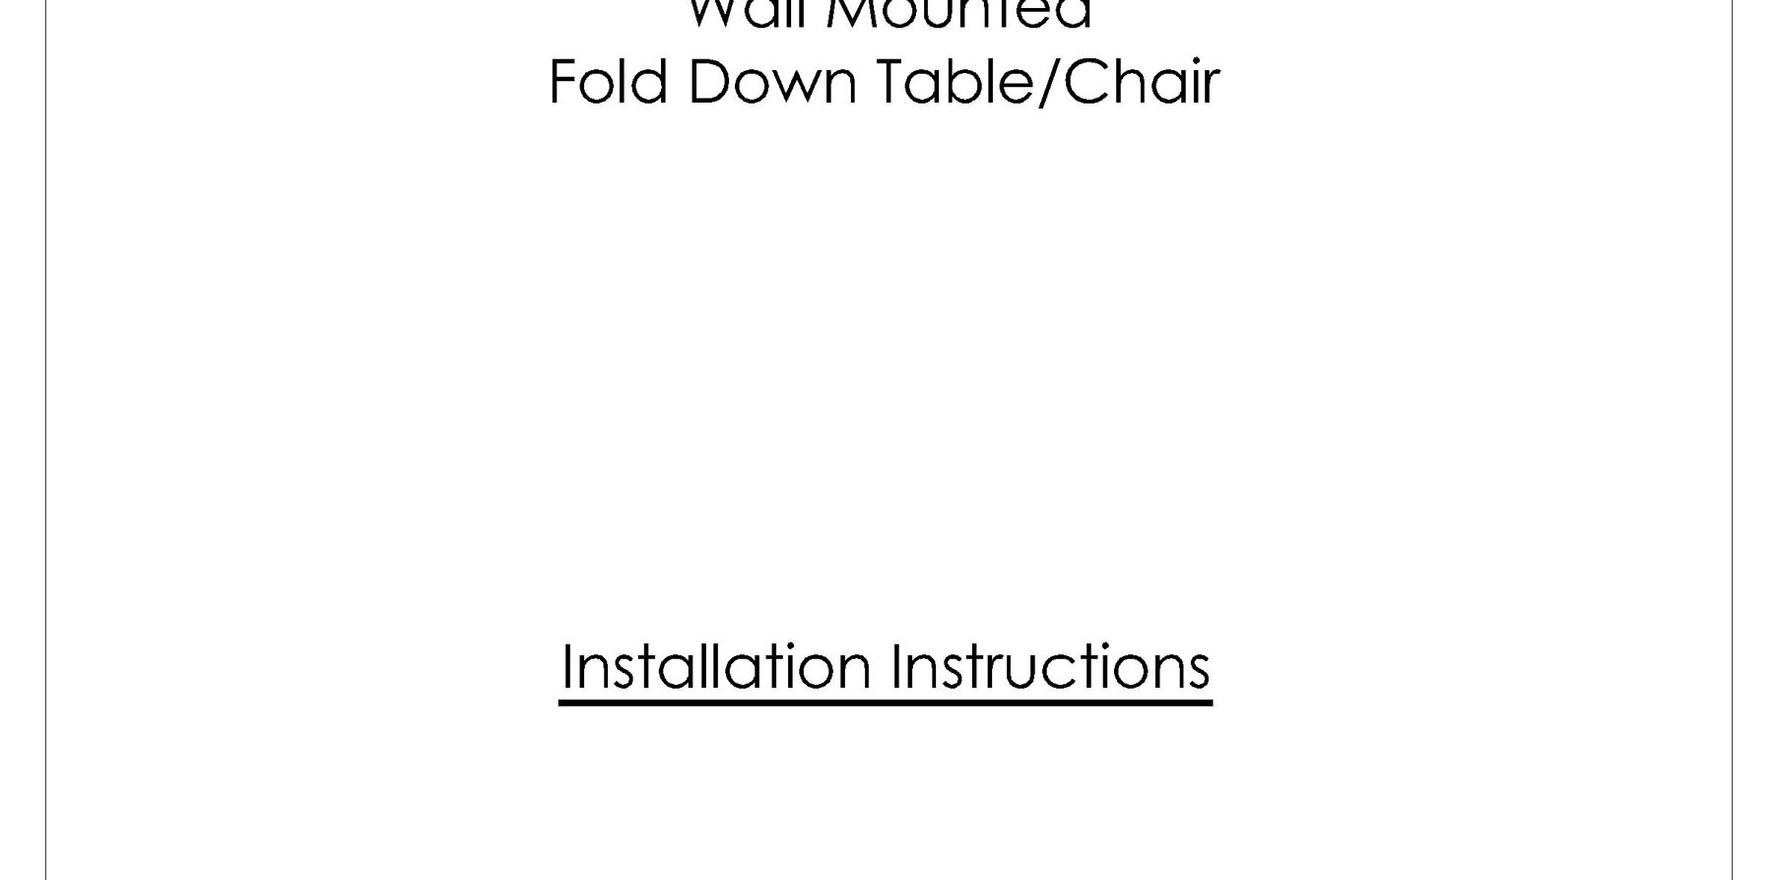 Wall-Mounted-Fold-Down-Table-Pg1.jpg